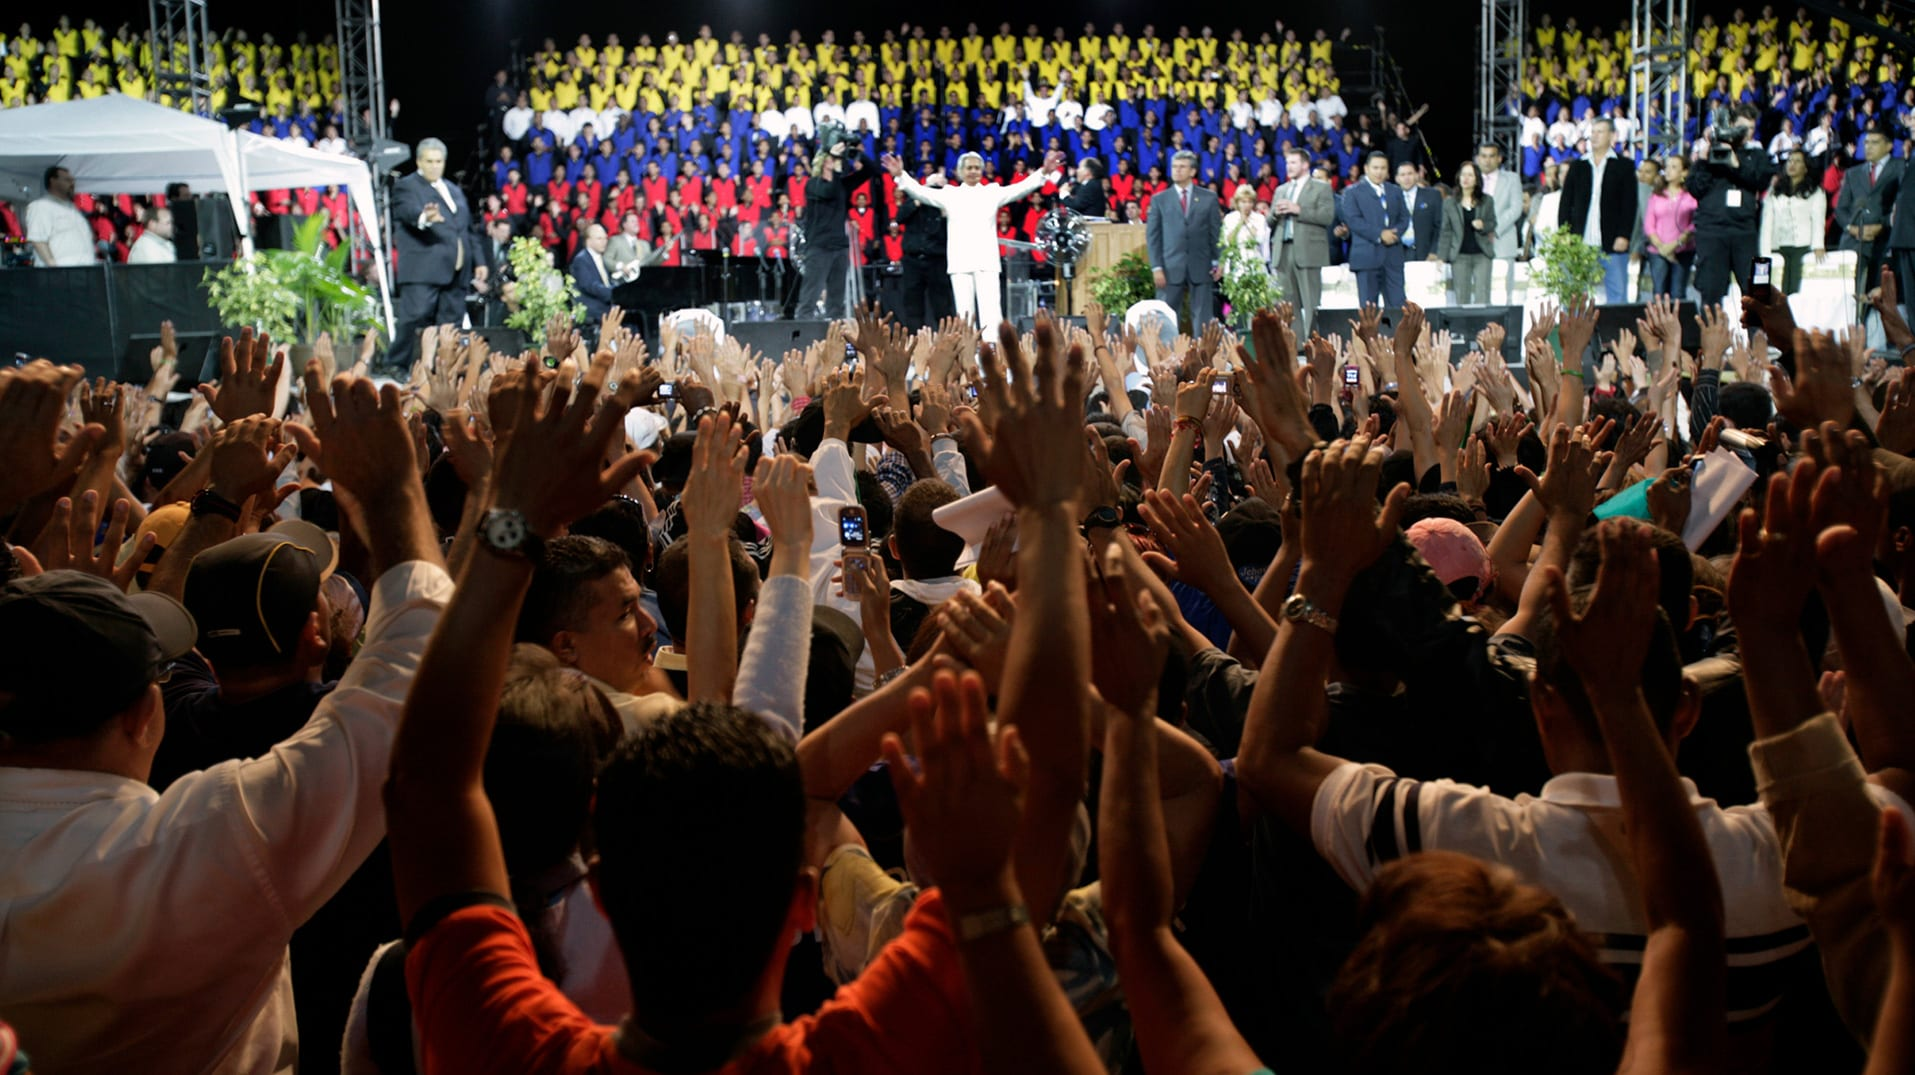 Valencia, Venezuela 2007, P1 - This Is Your Day - Benny Hinn Ministries